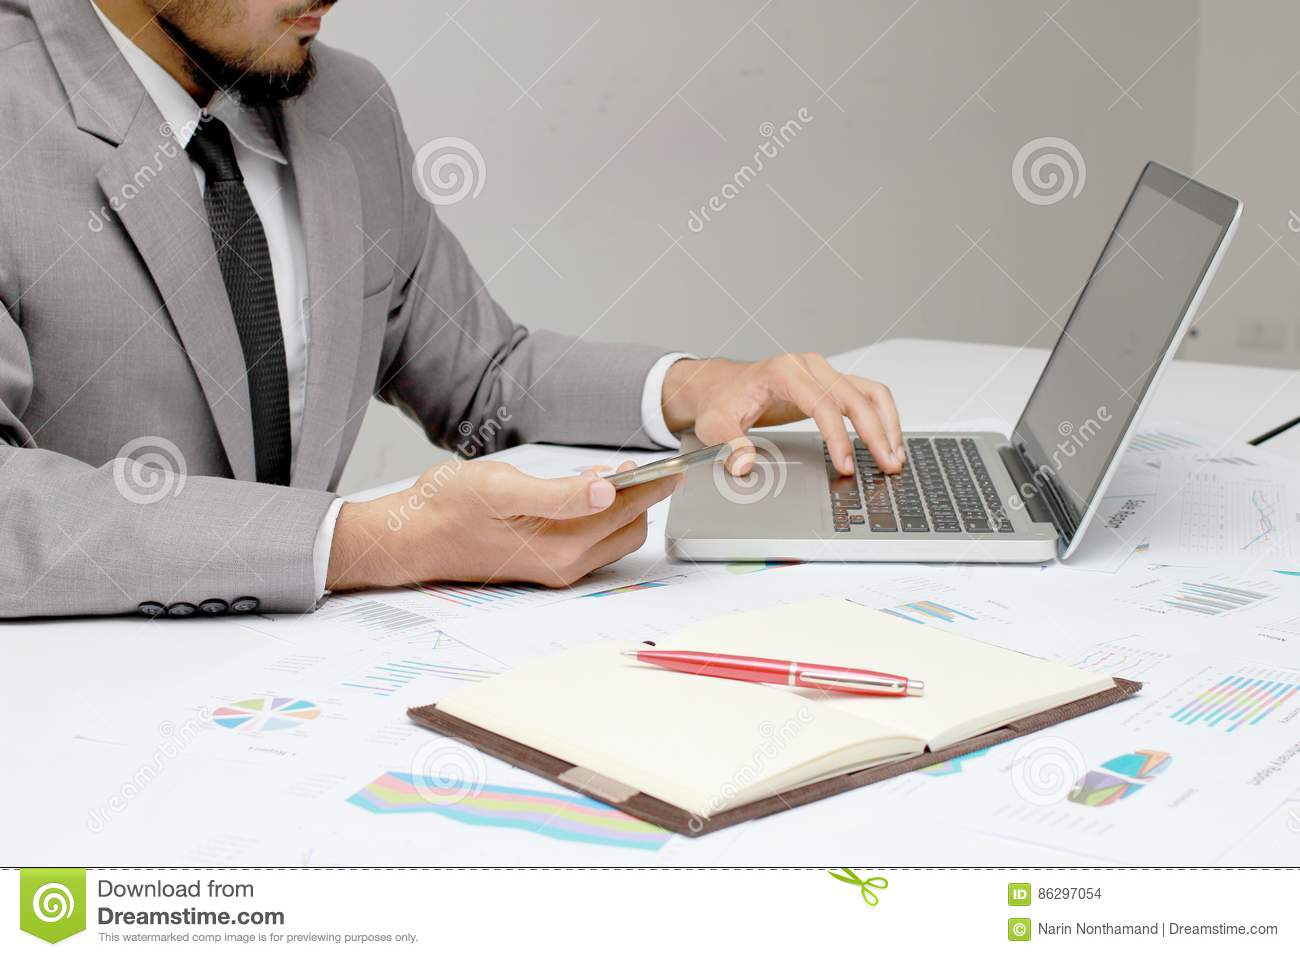 Business man hands busy using cell phone, laptop, pen and notebook at office desk. Analysis the charts and graphs showing the resu